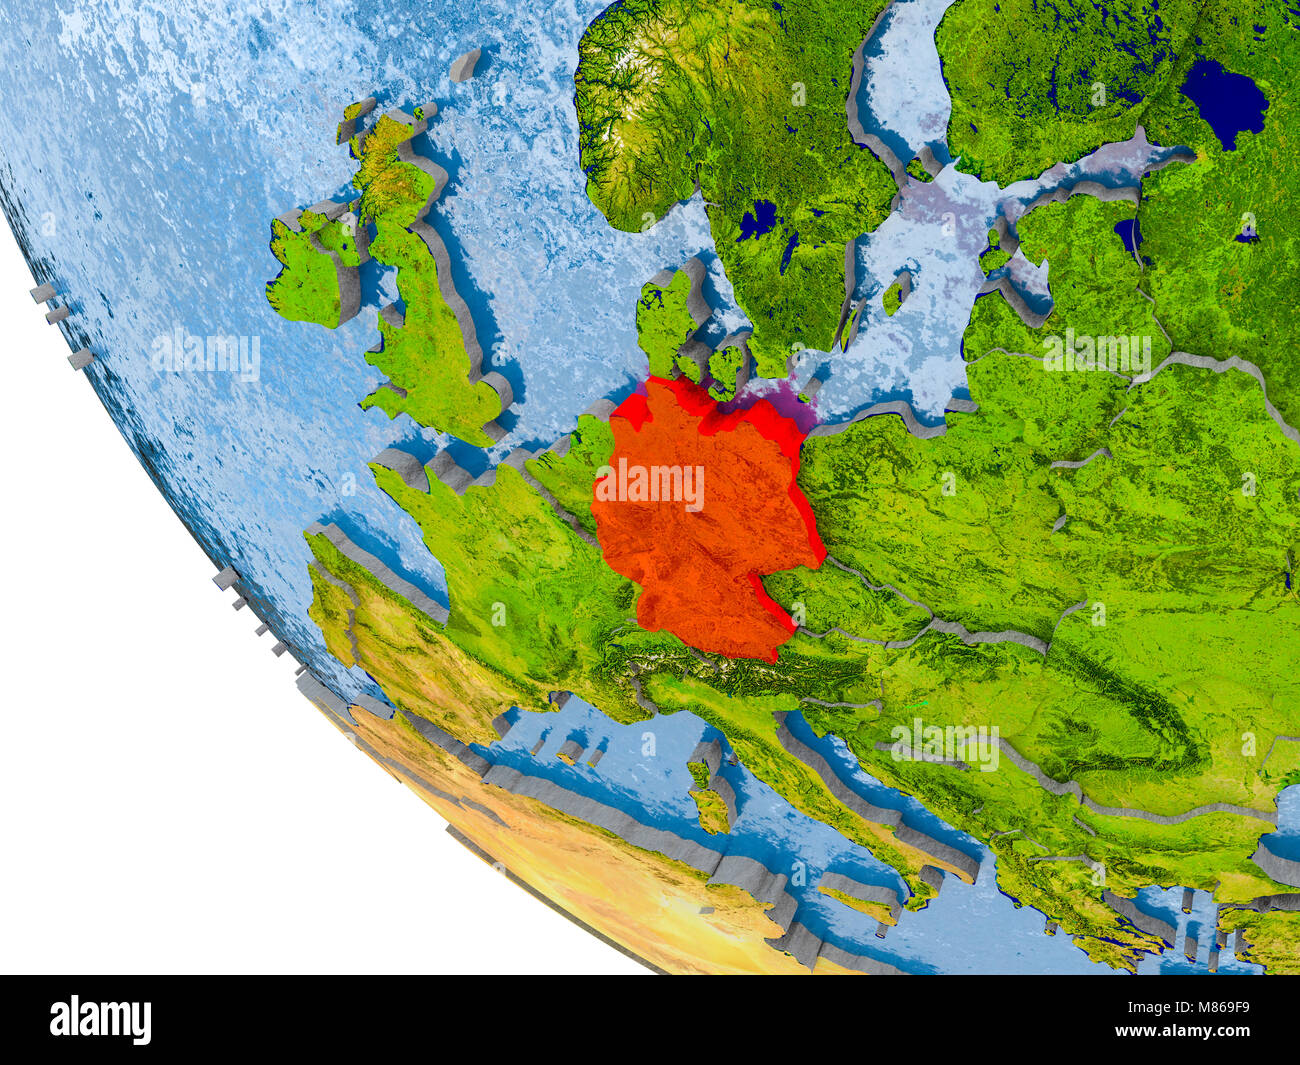 Map of germany in red on globe with real planet surface embossed map of germany in red on globe with real planet surface embossed countries with visible country borders and water in the oceans 3d illustration ele gumiabroncs Gallery